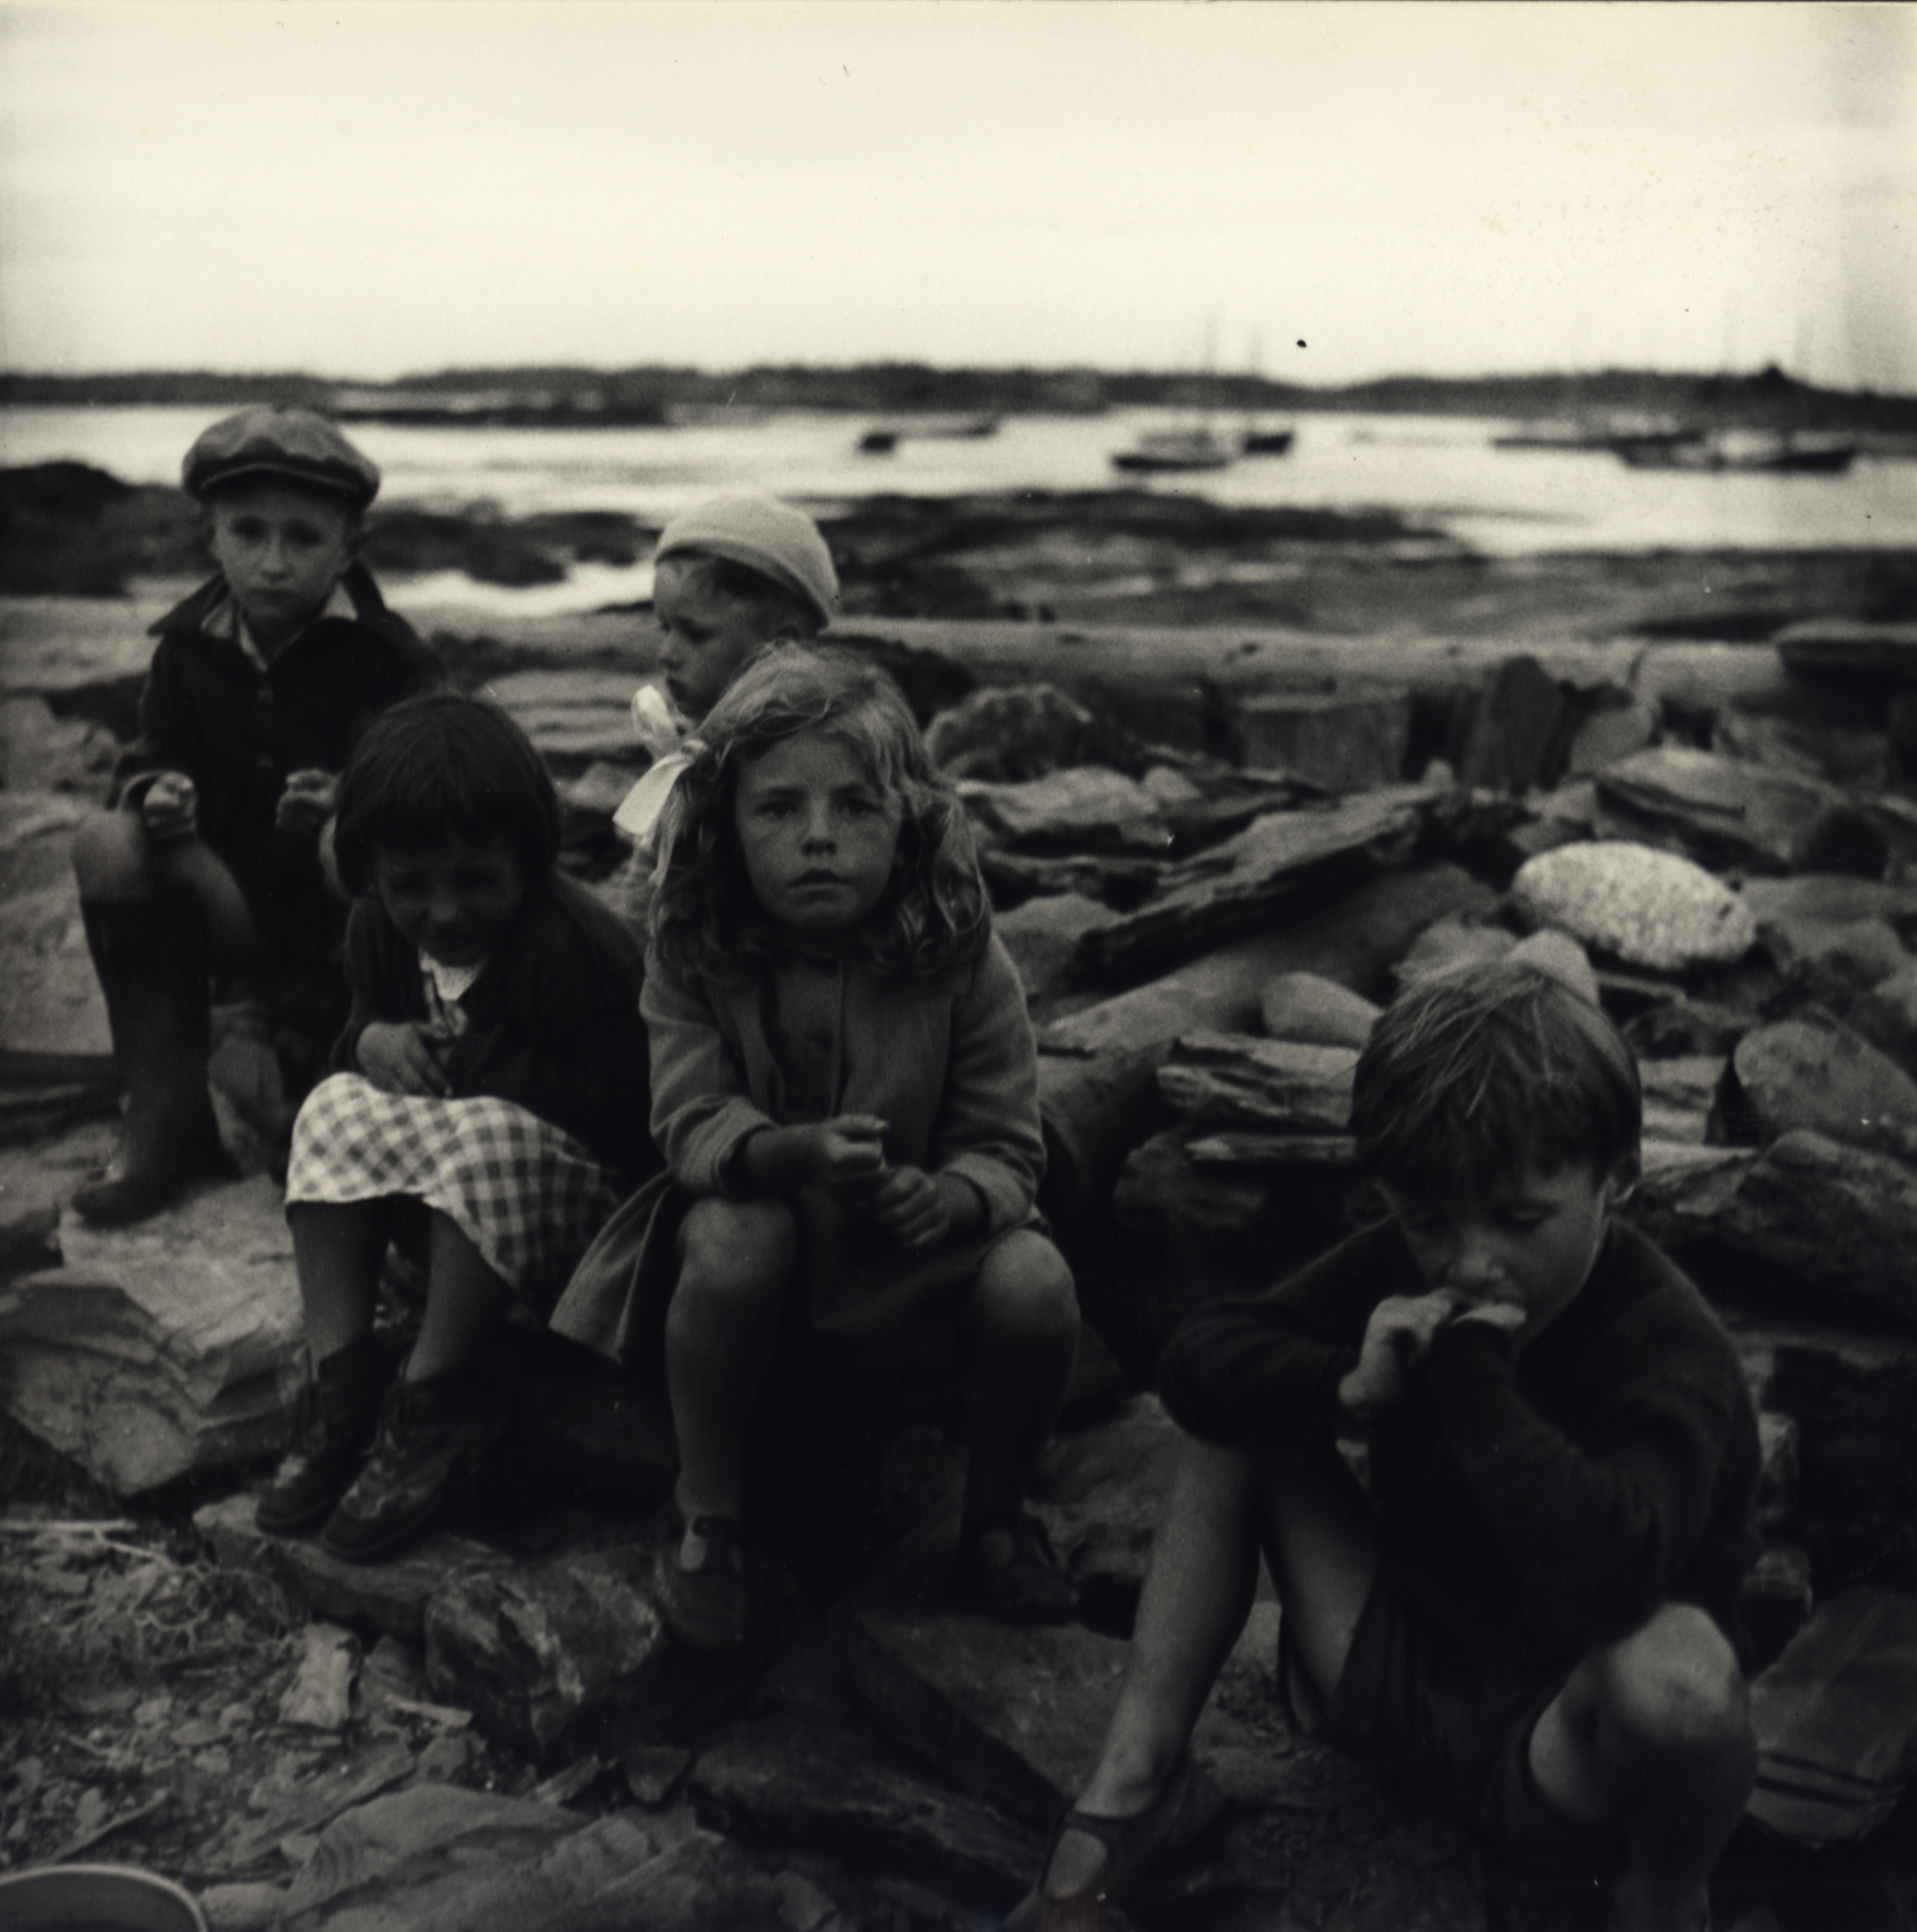 Children sitting on rocks at port, New York City, ca. 1940 | Bild: Sandra Weiner Courtesy Steven Kasher Gallery, New York